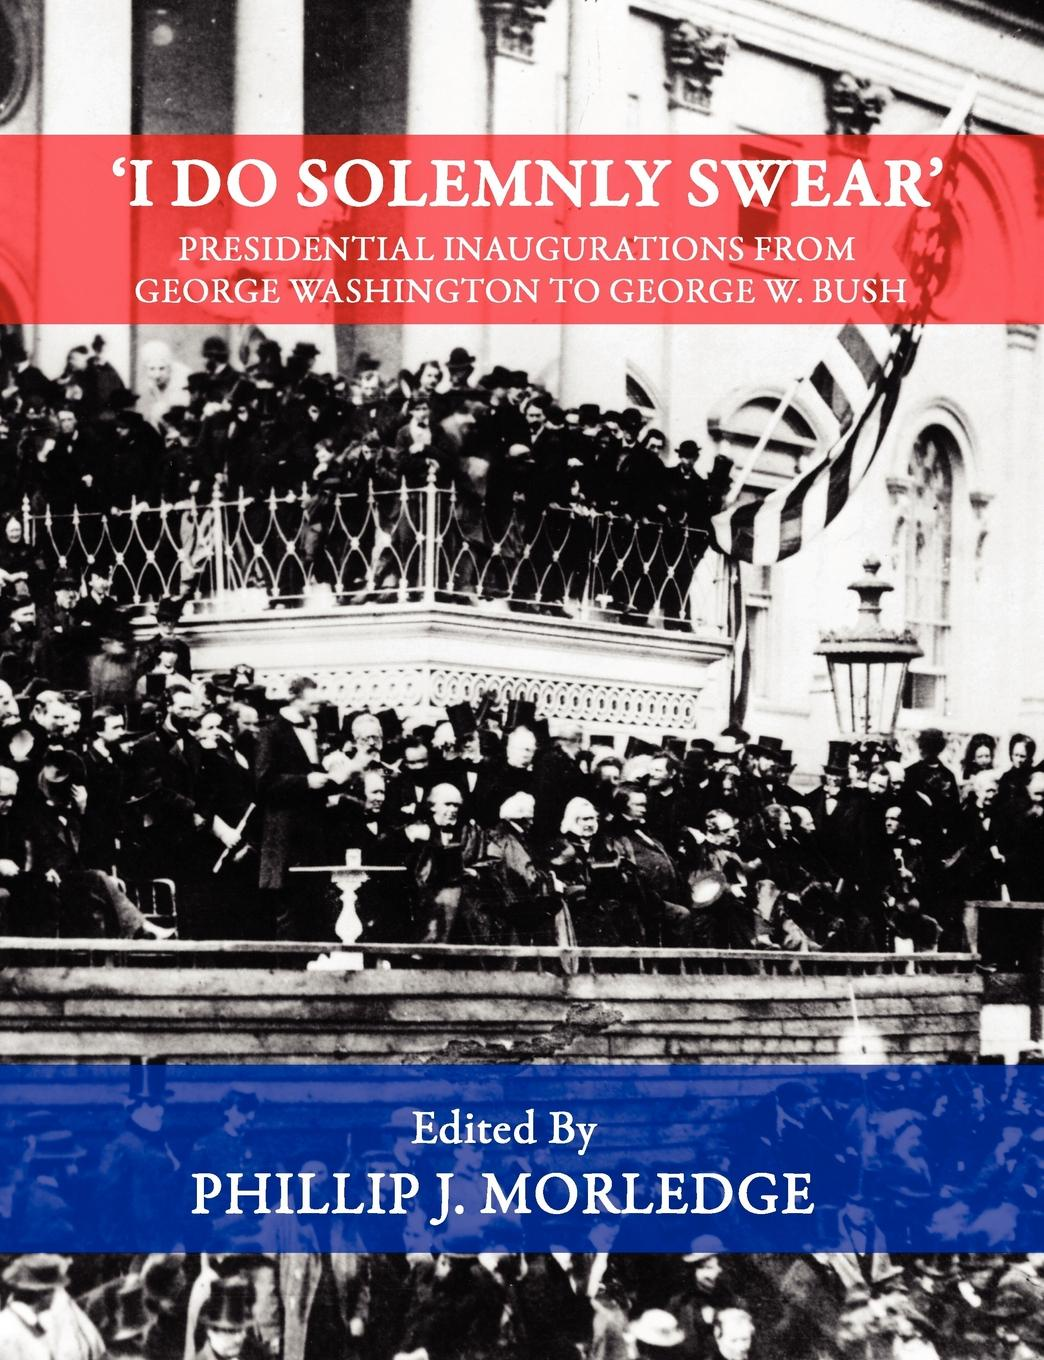 Phillip J. Morledge .I Do Solemnly Swear. - Presidential Inaugurations From George Washington to George W. Bush jim ware the leadership genius of george w bush 10 commonsense lessons from the commander in chief